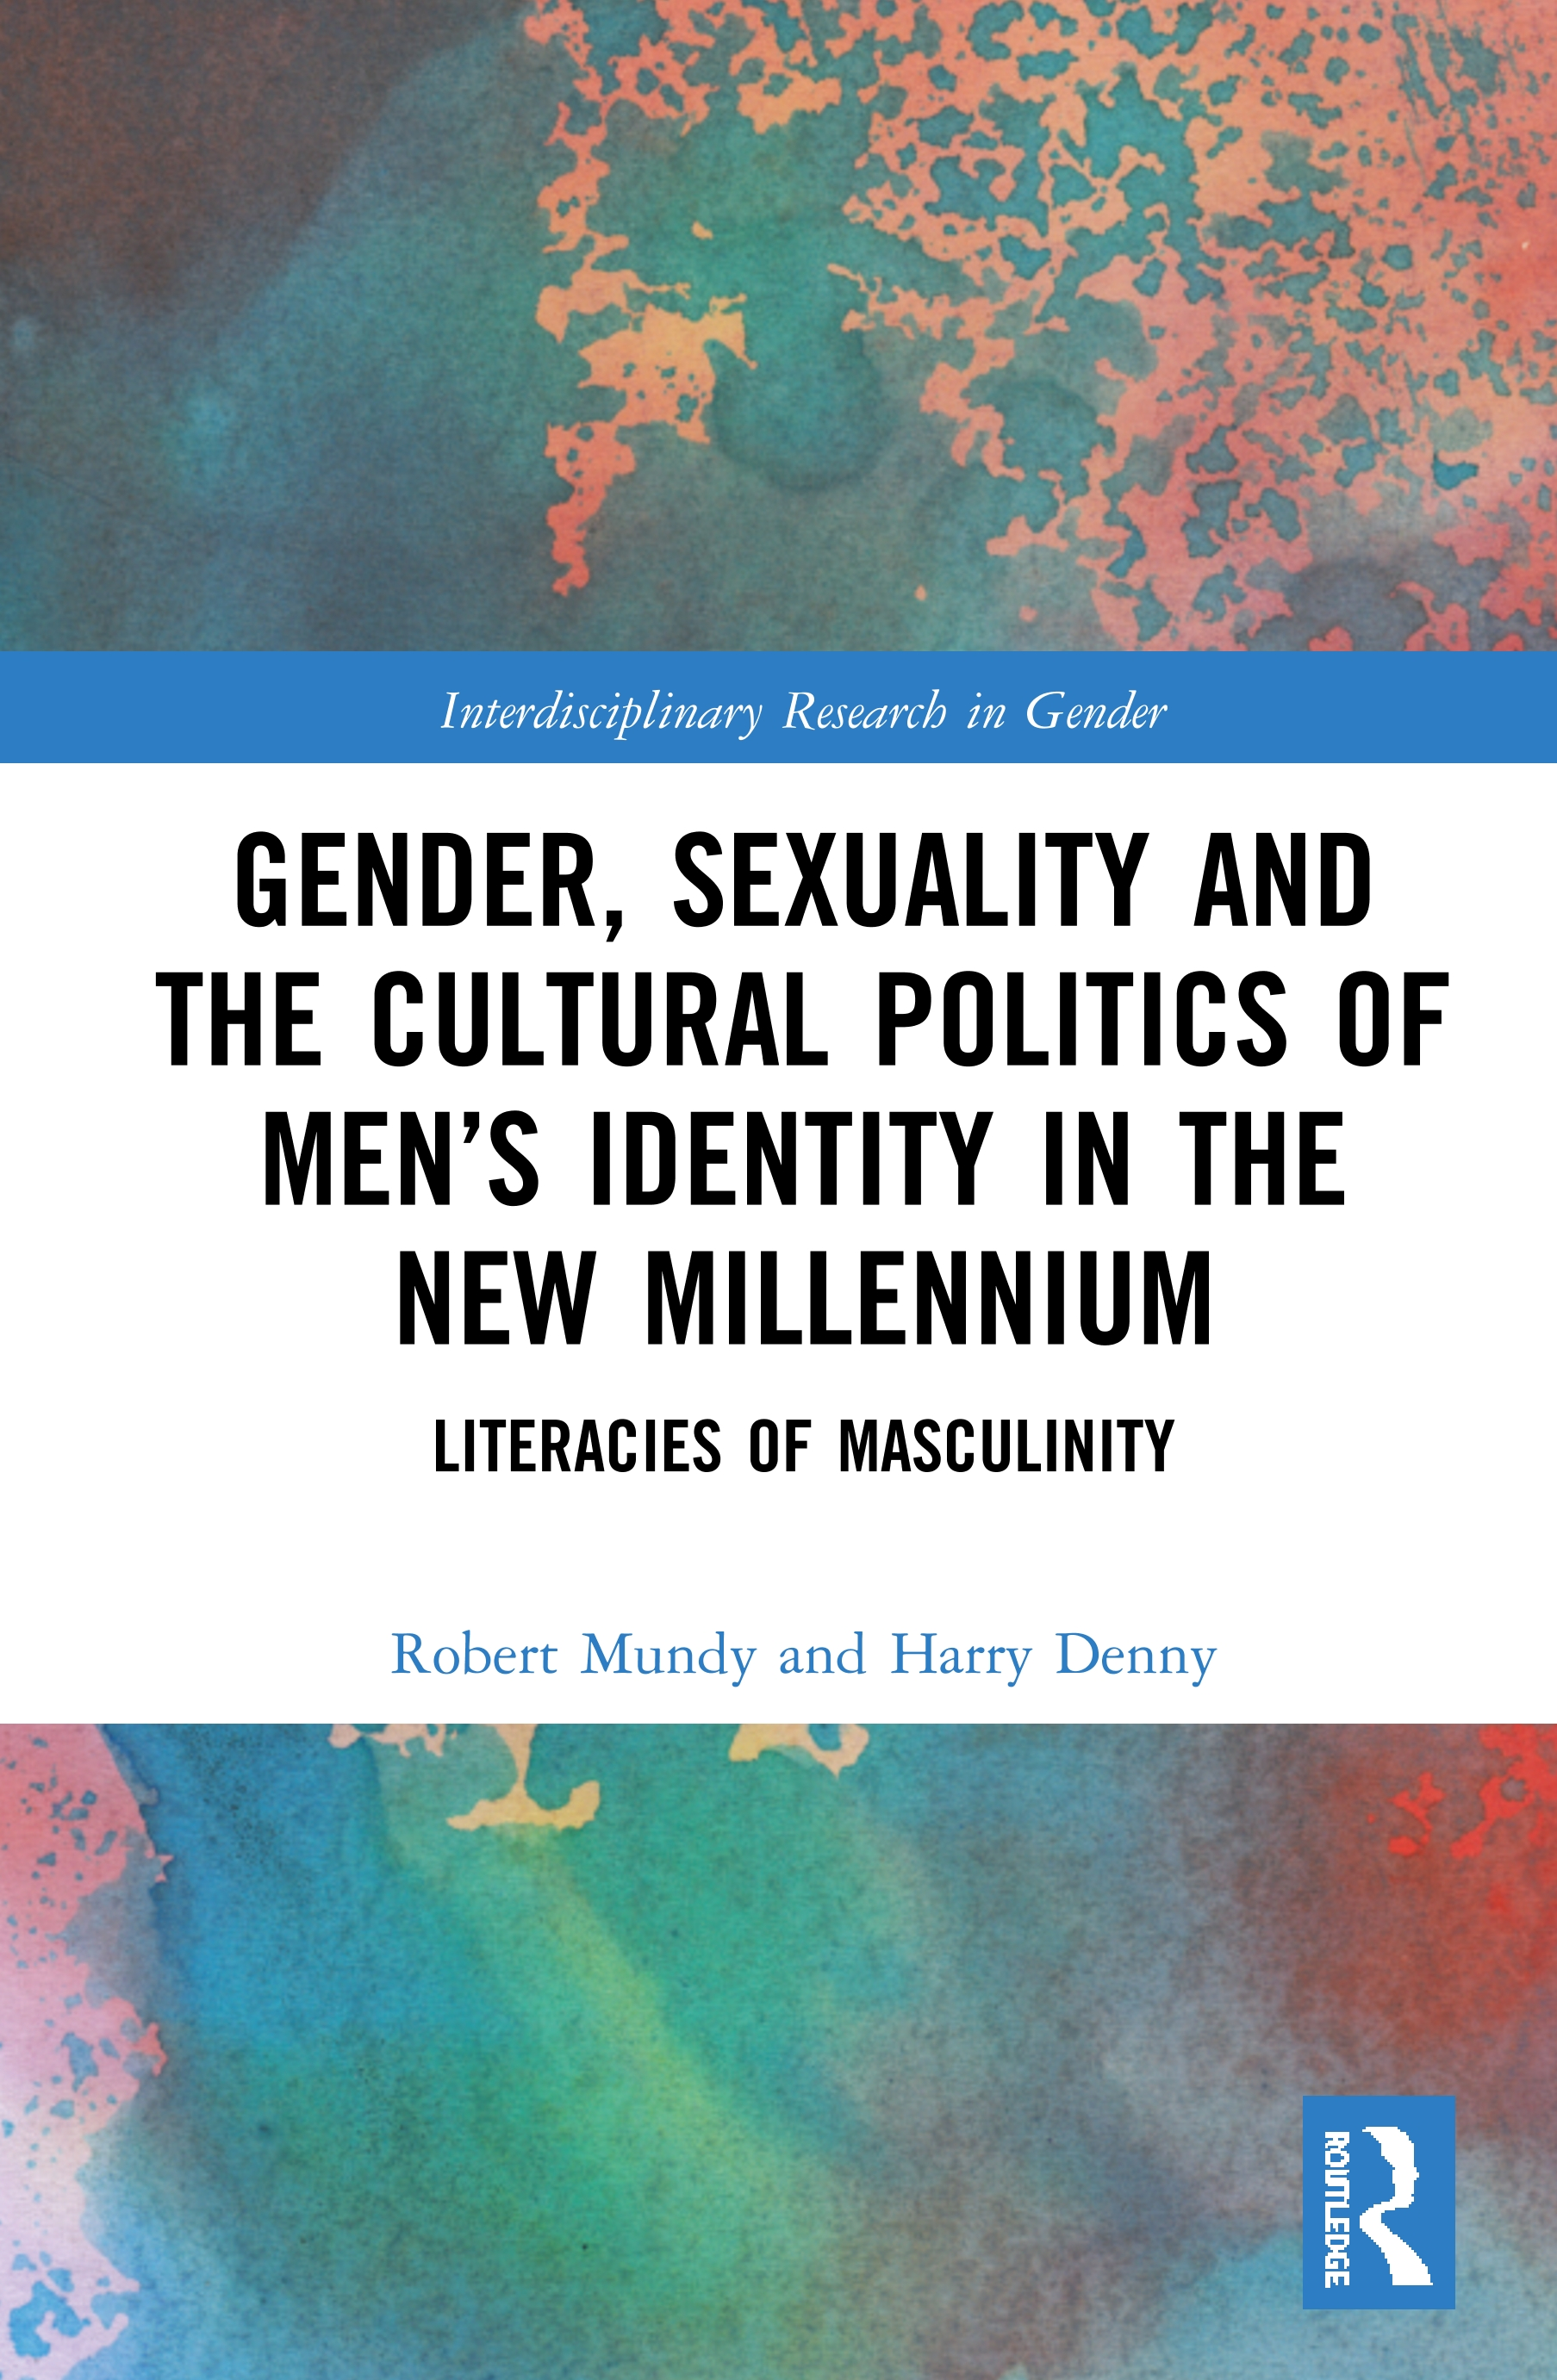 Gender, Sexuality, and the Cultural Politics of Men's Identity: Literacies of Masculinity book cover